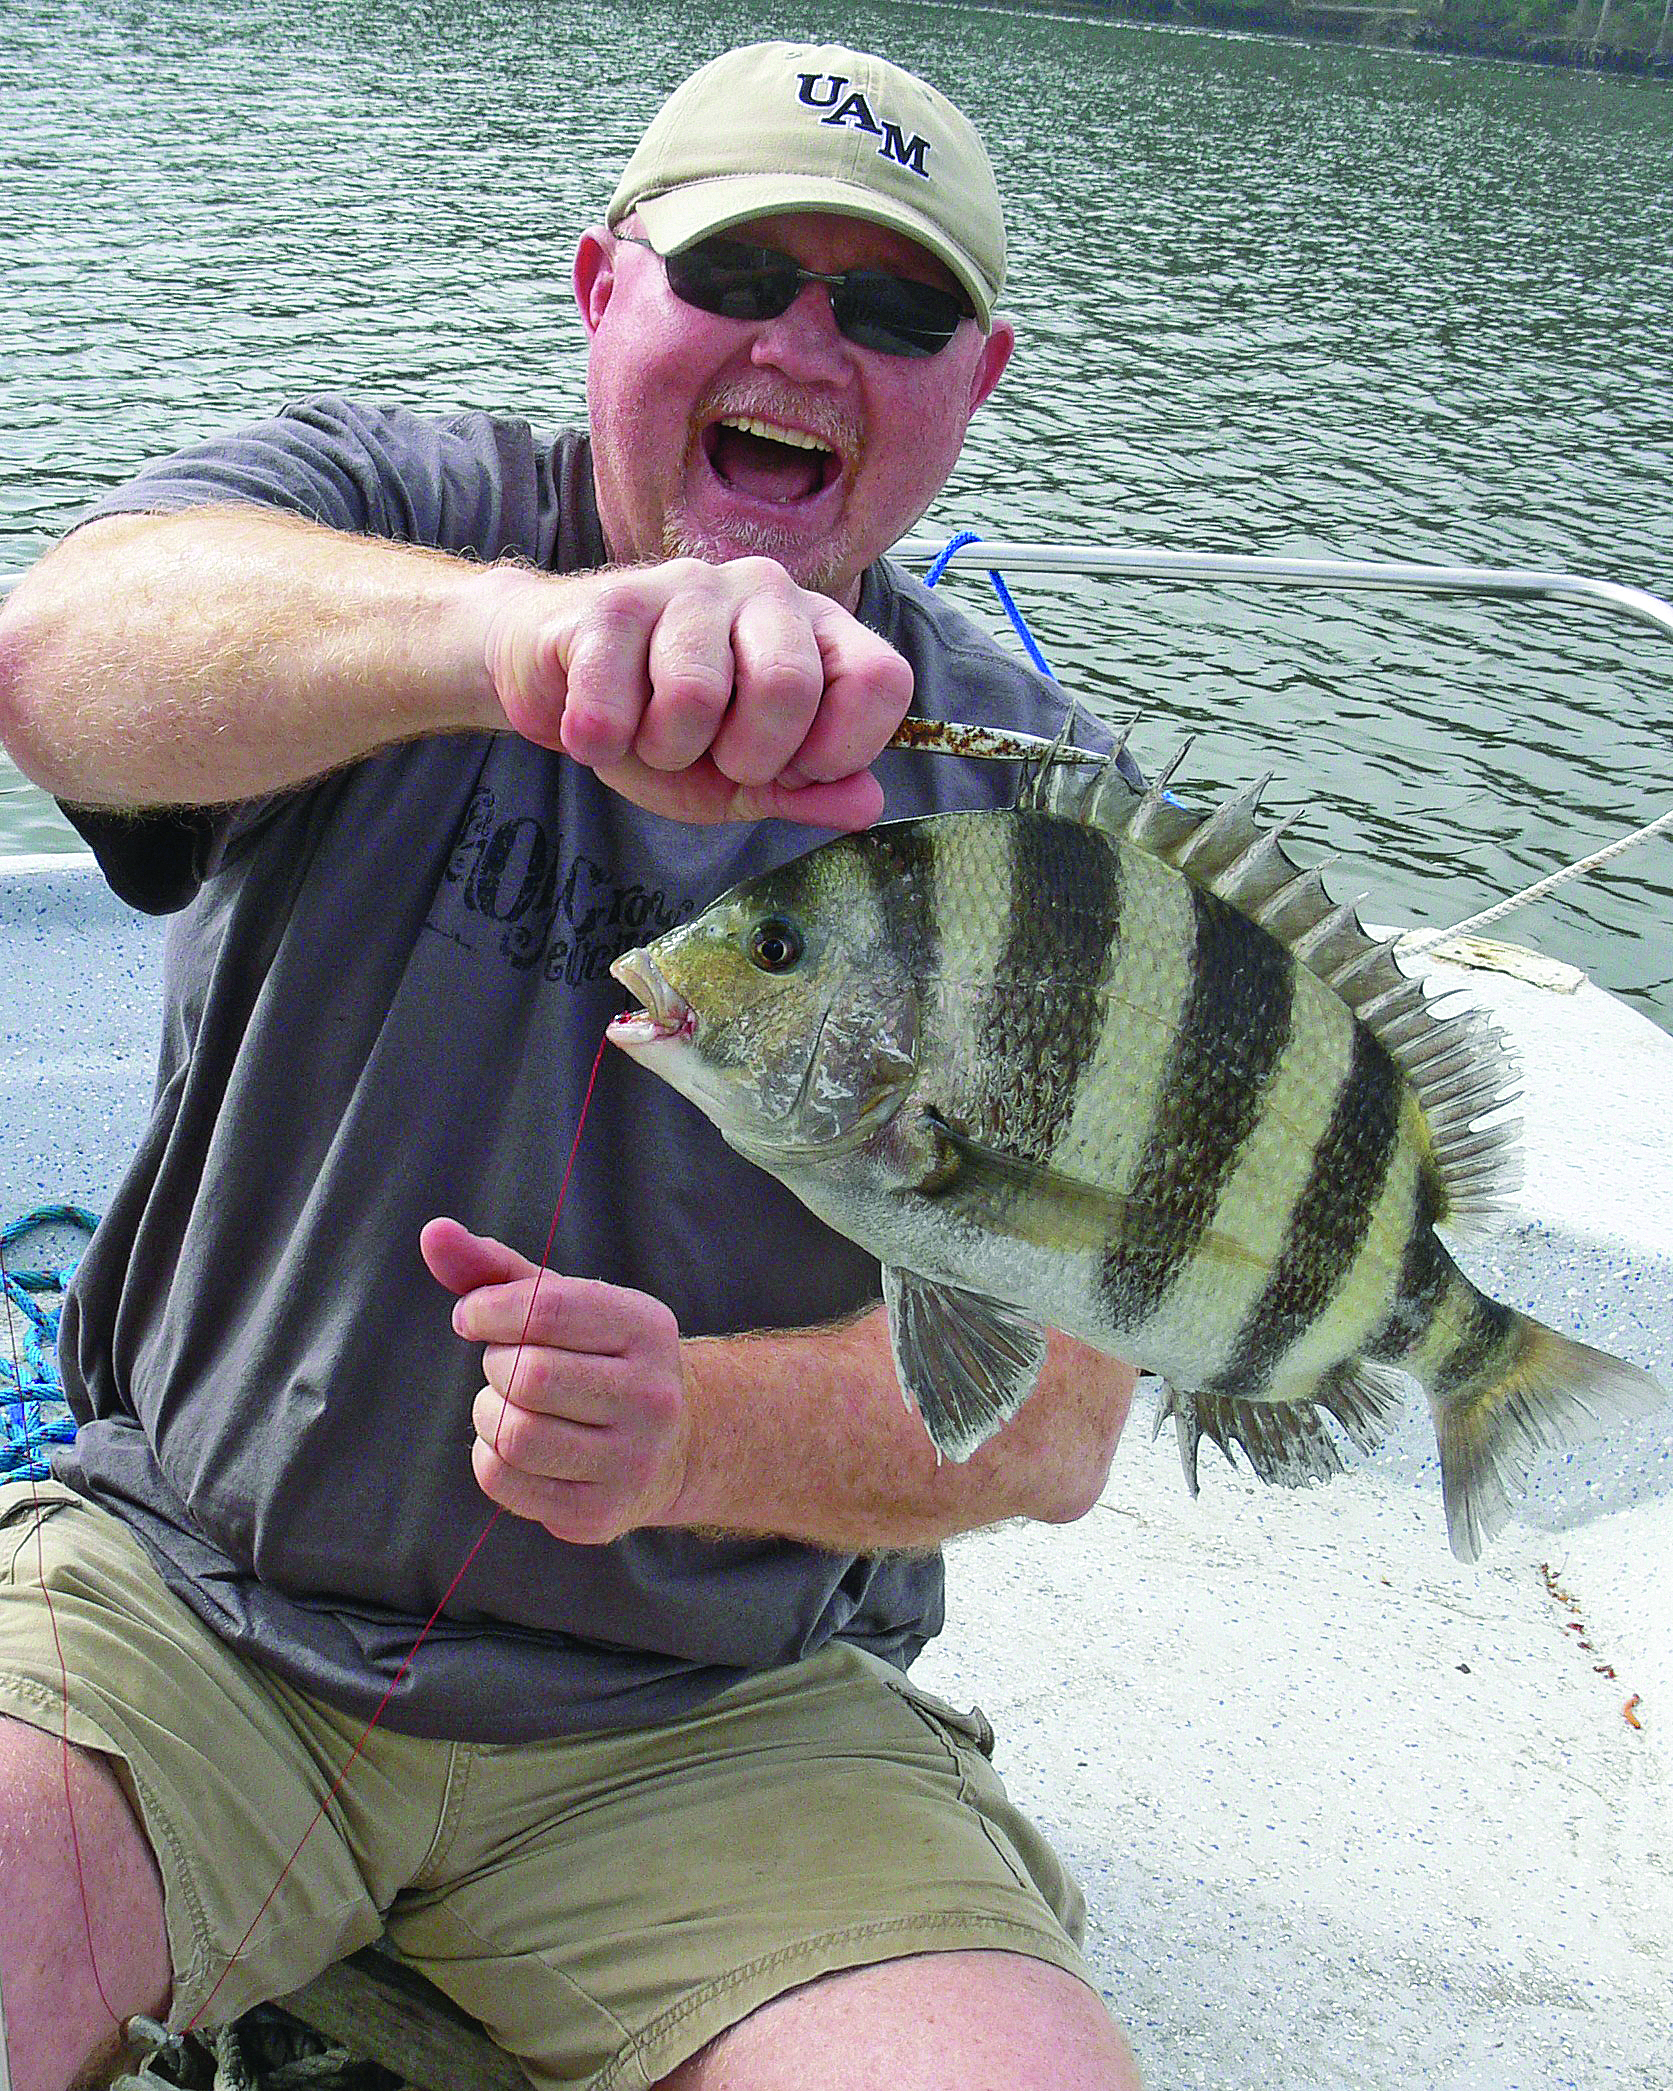 When fishing sheepshead, finding their location is the biggest objective.